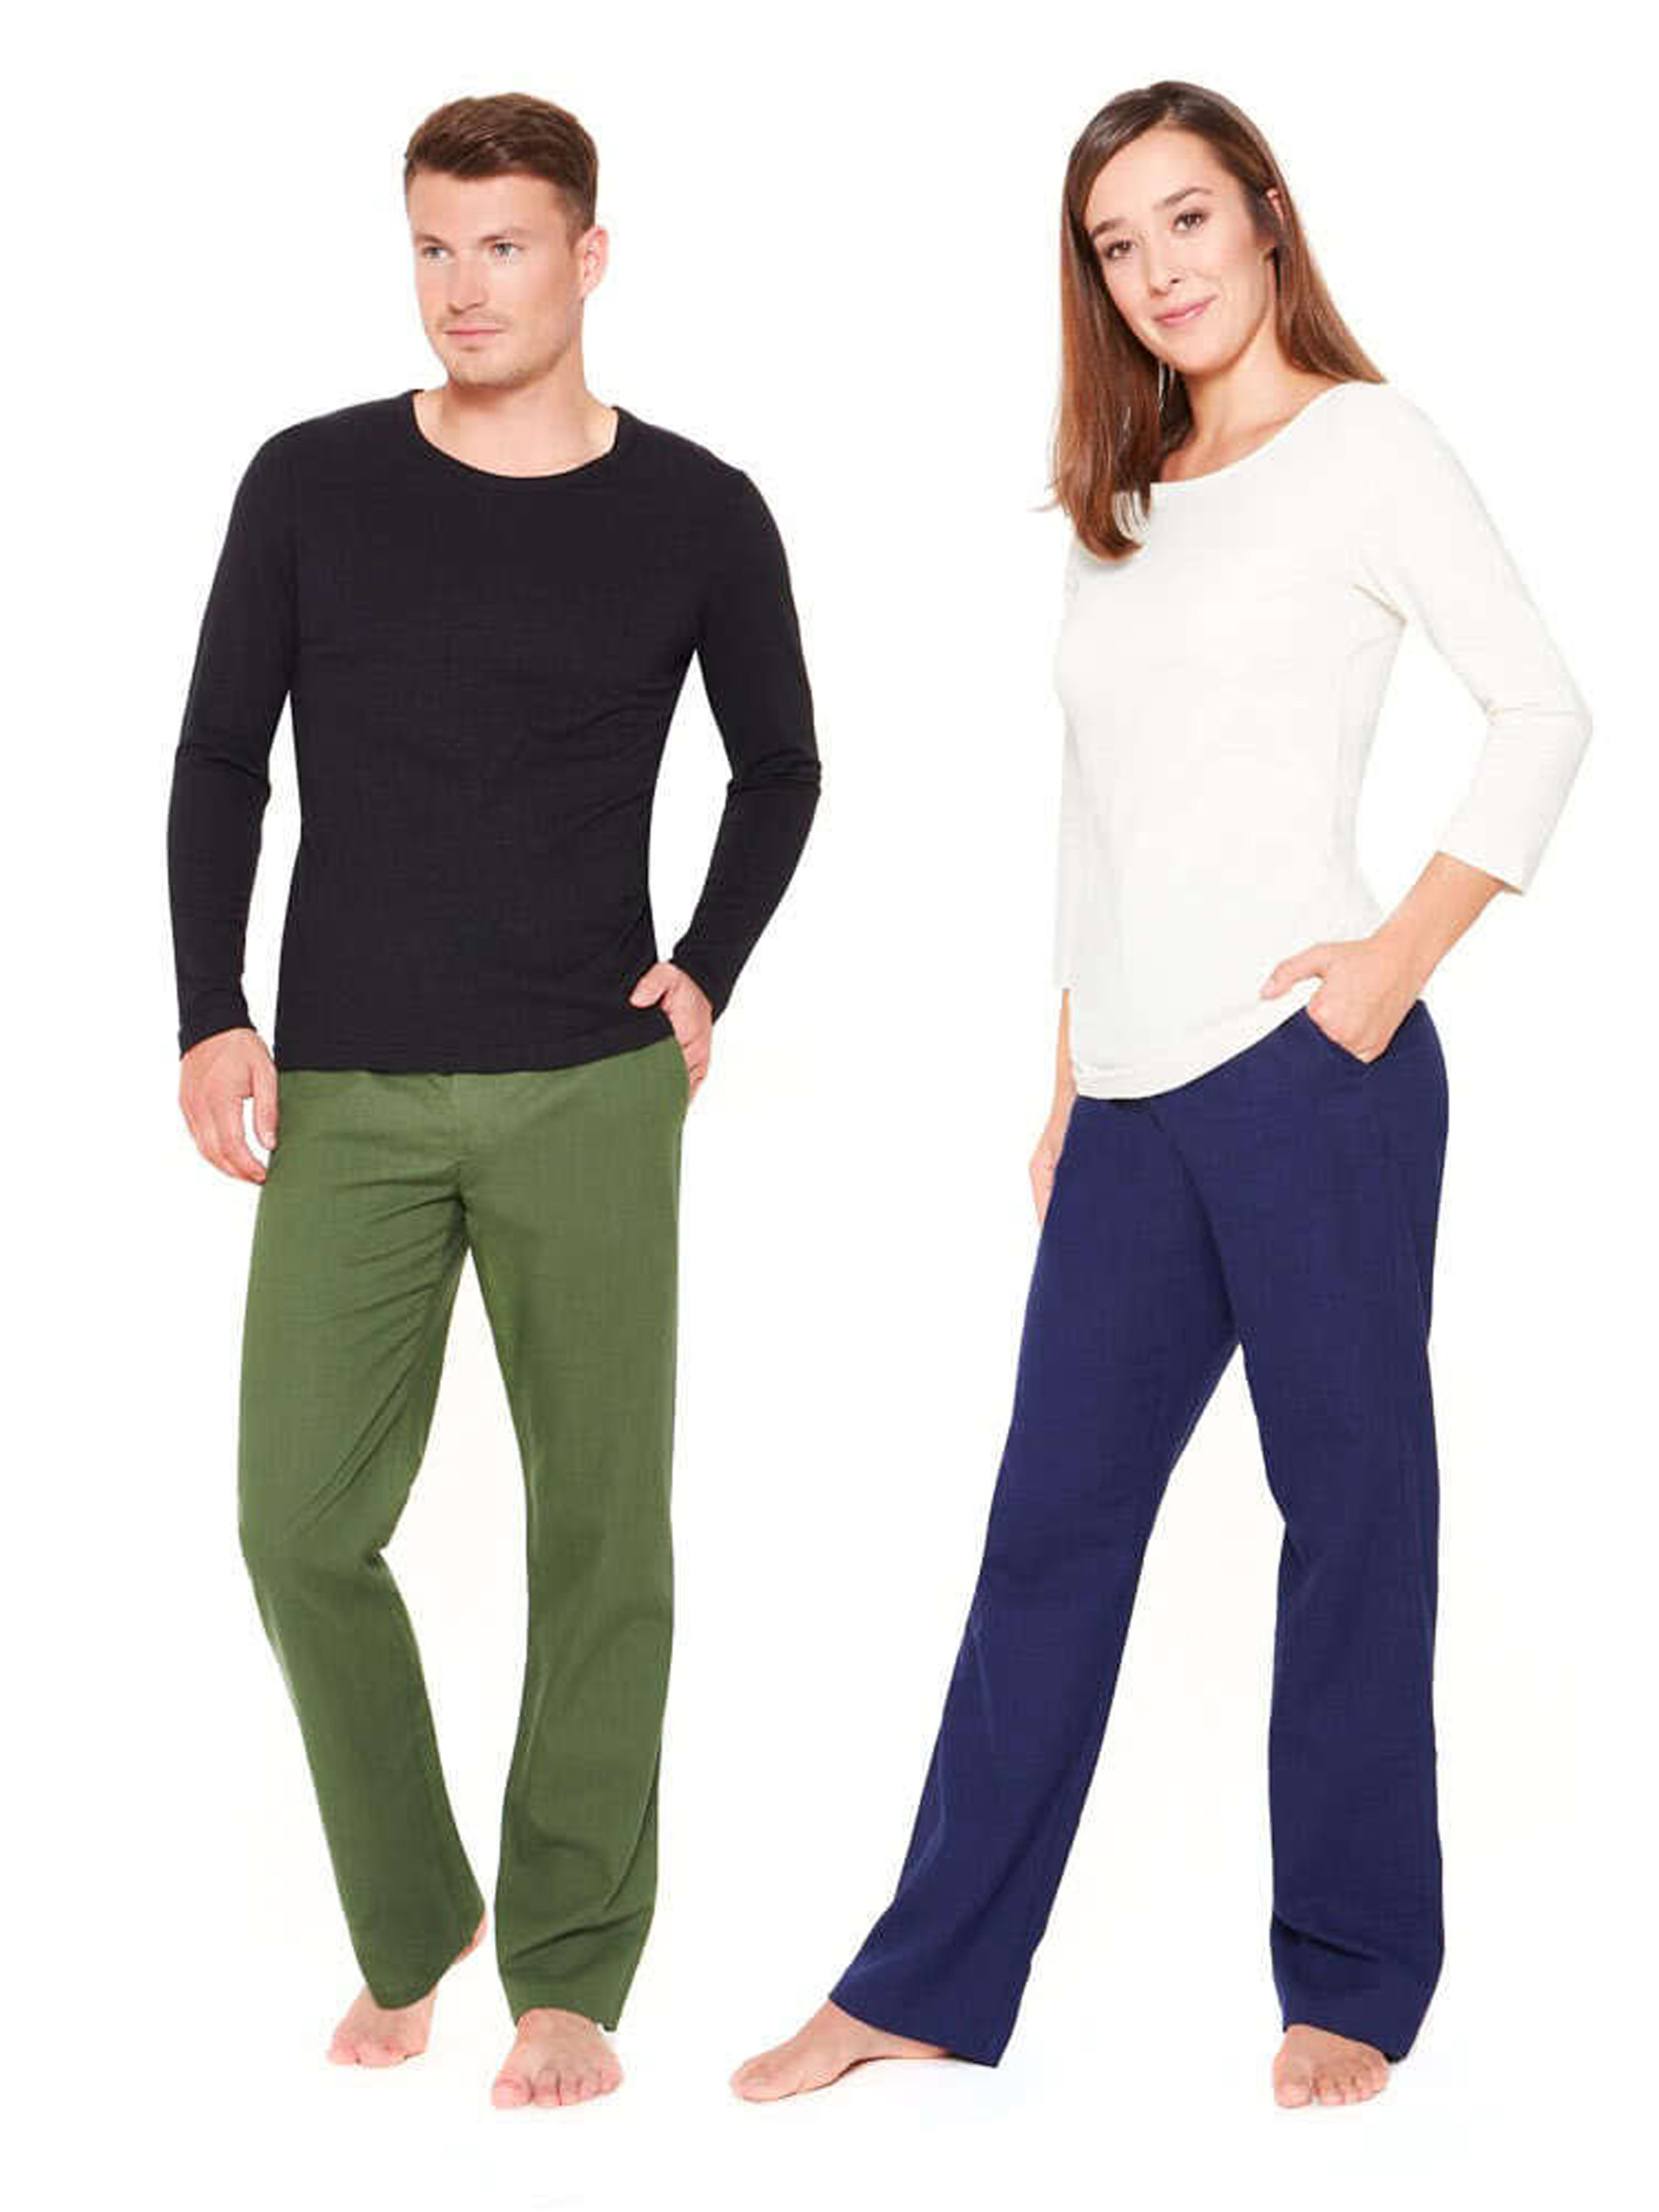 Chino Pants for women and men (hemp / organic cotton)